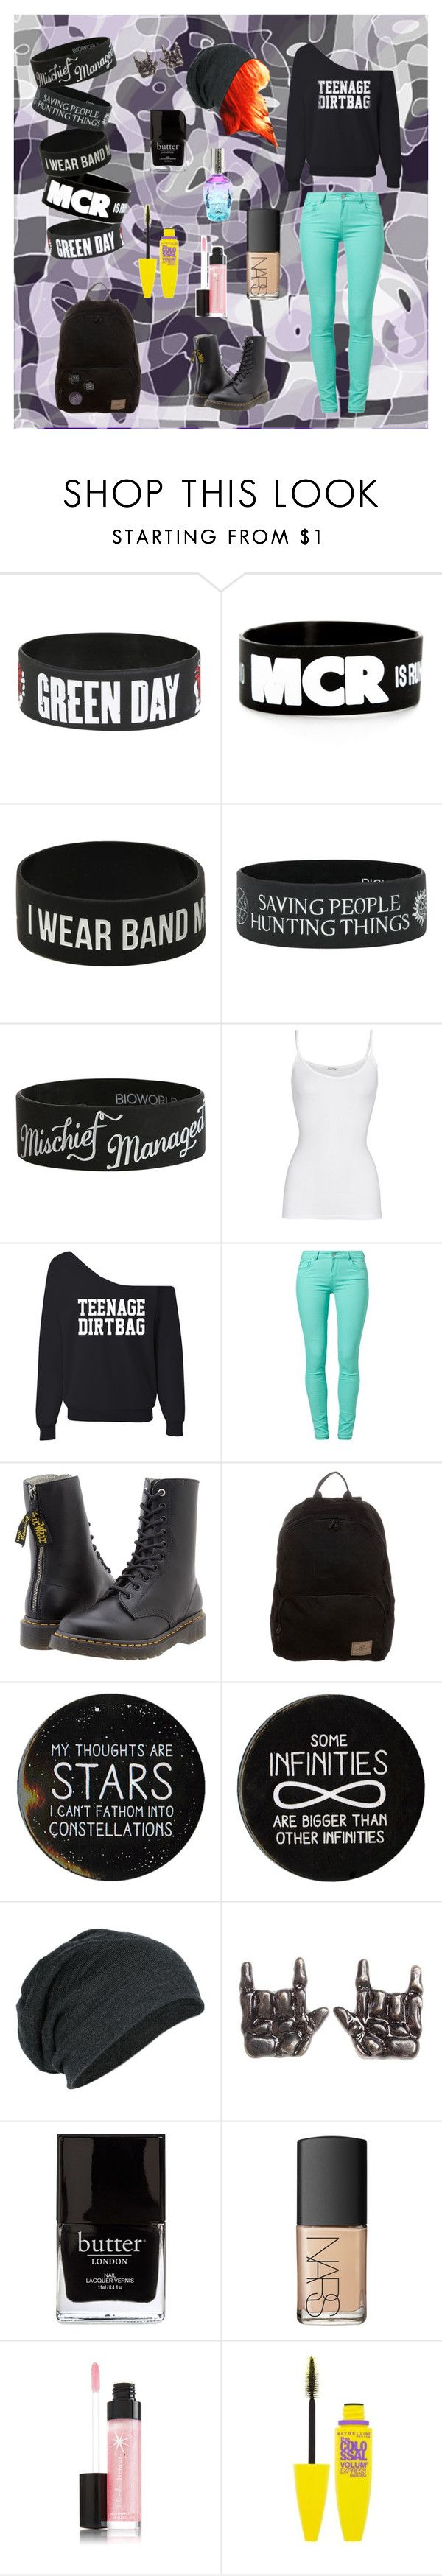 """""""Band merch"""" by professionalfangirl2306 ❤ liked on Polyvore featuring American Vintage, SuperTrash, Y's by Yohji Yamamoto, O'Neill, Jack Black and NARS Cosmetics"""